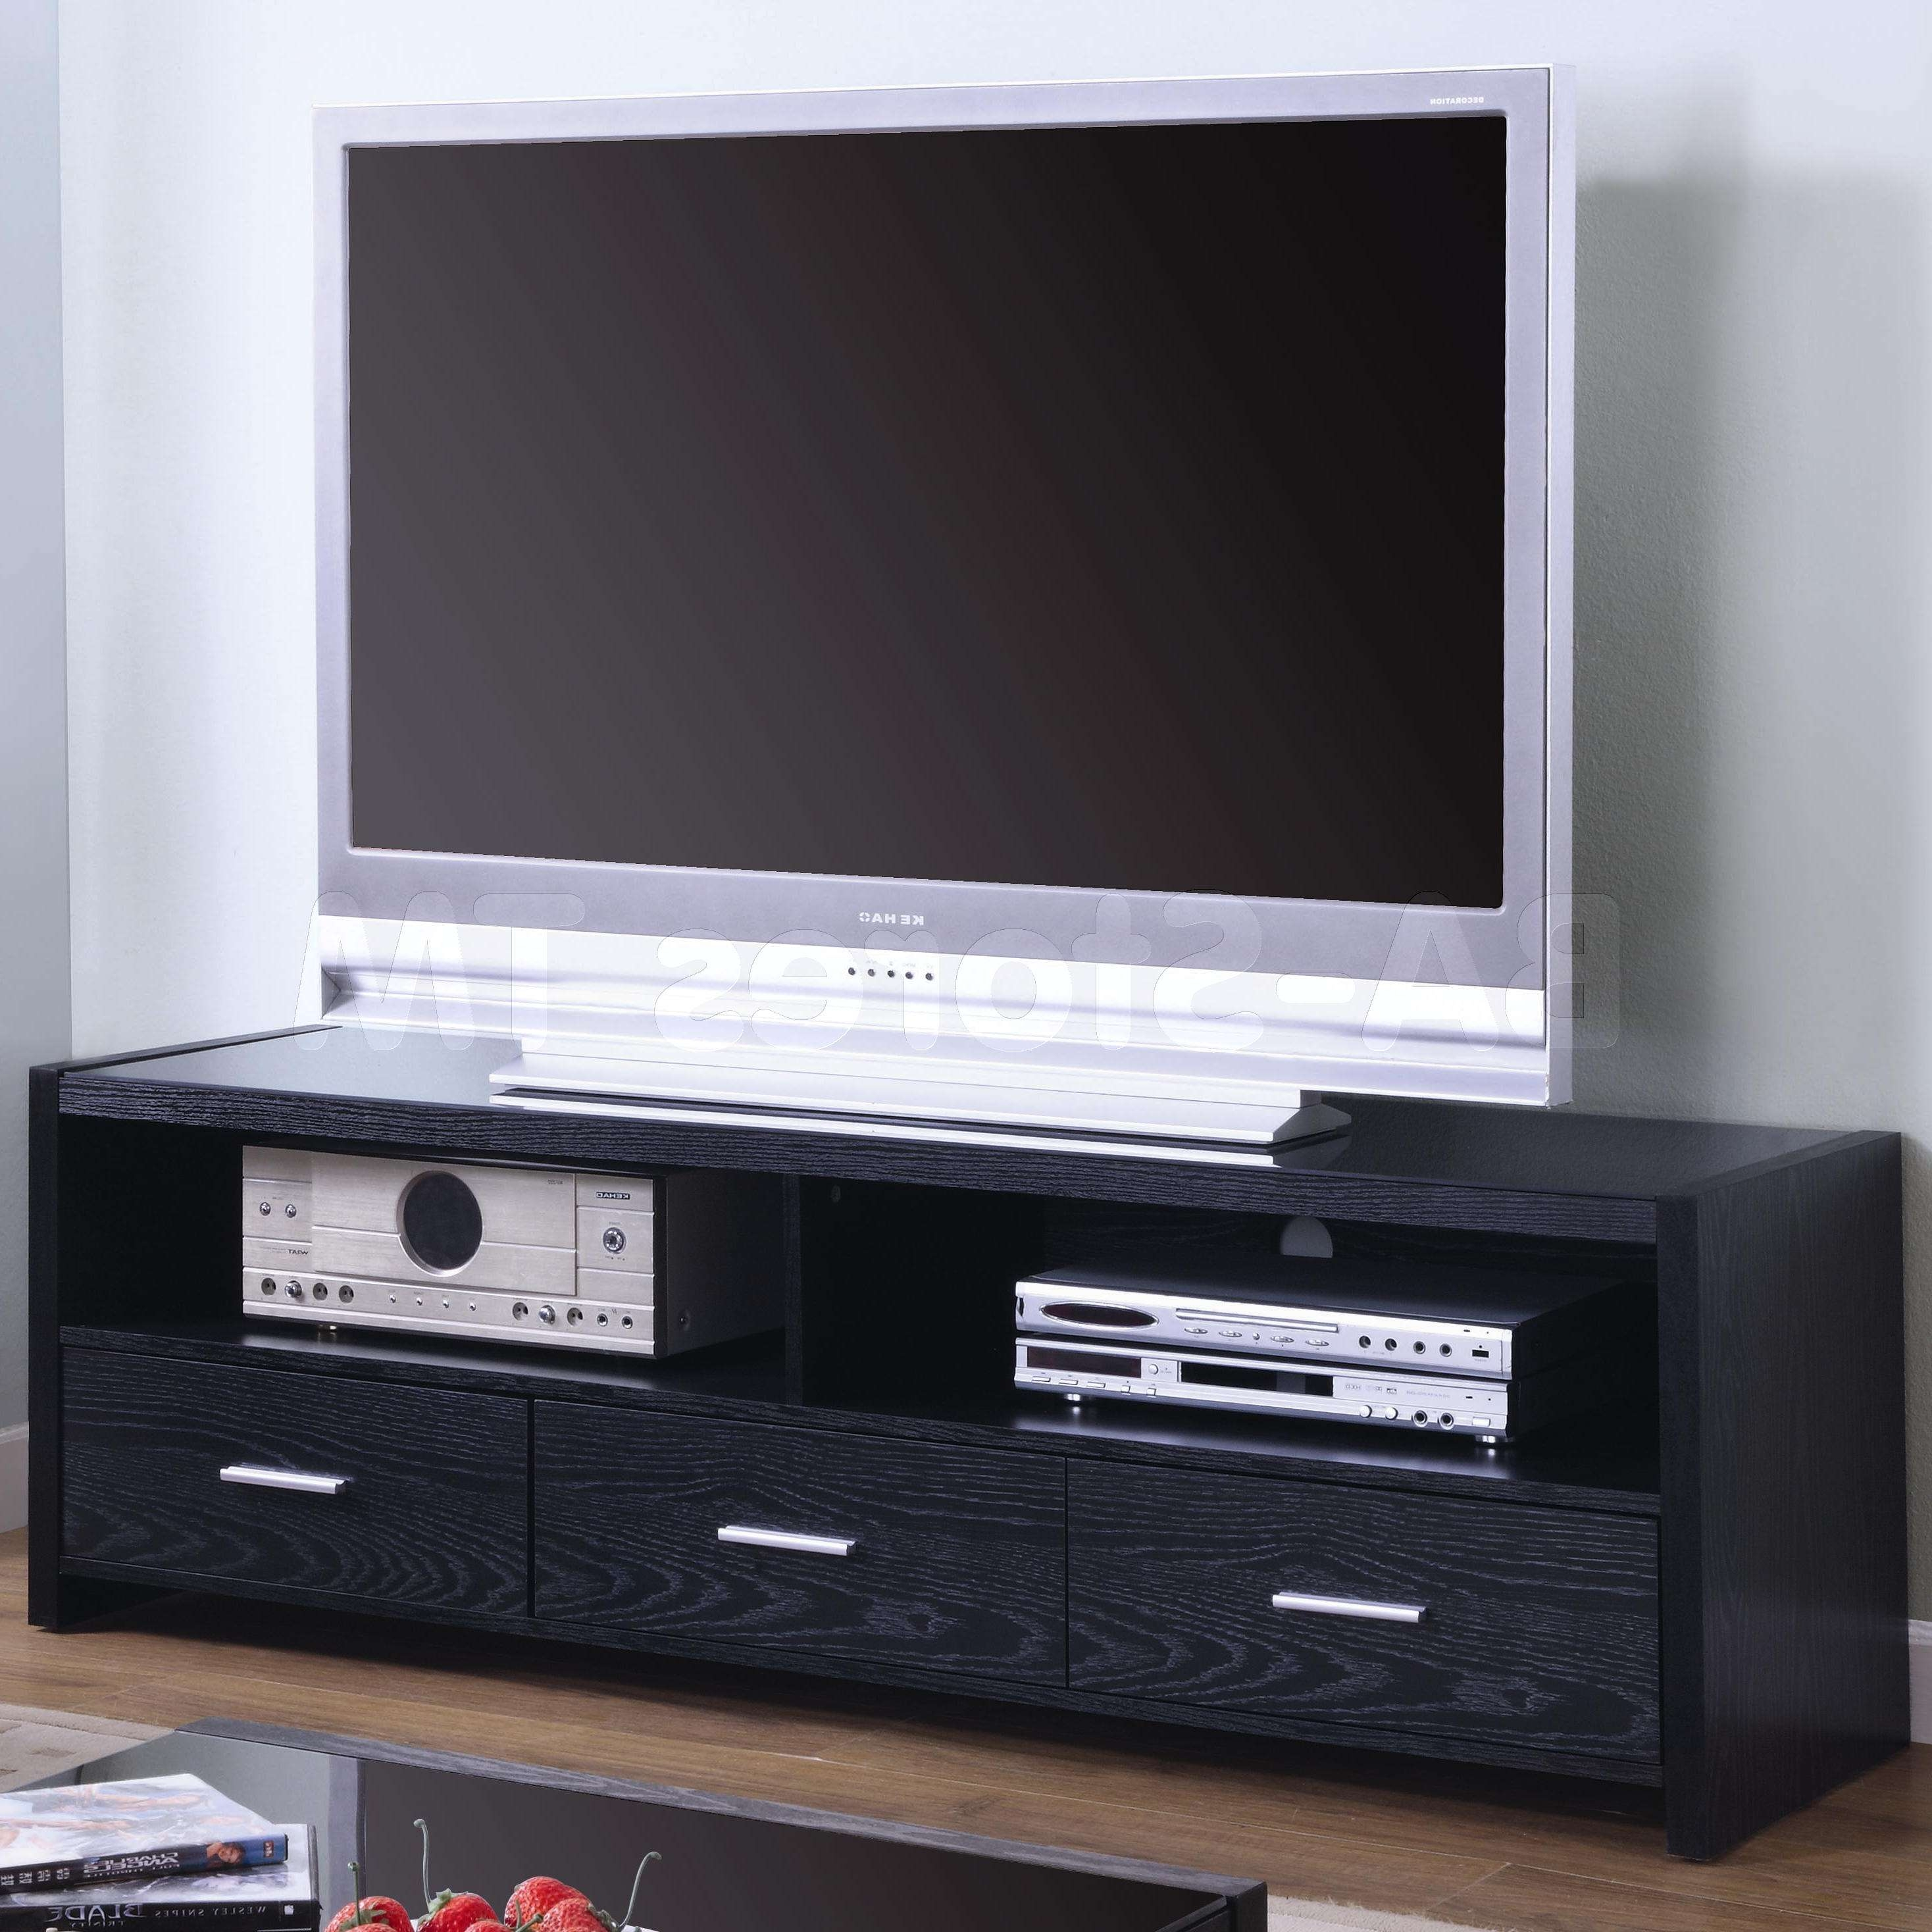 Best Contemporary Tv Console For Flat Screens | All Contemporary Throughout Contemporary Tv Stands For Flat Screens (View 3 of 15)